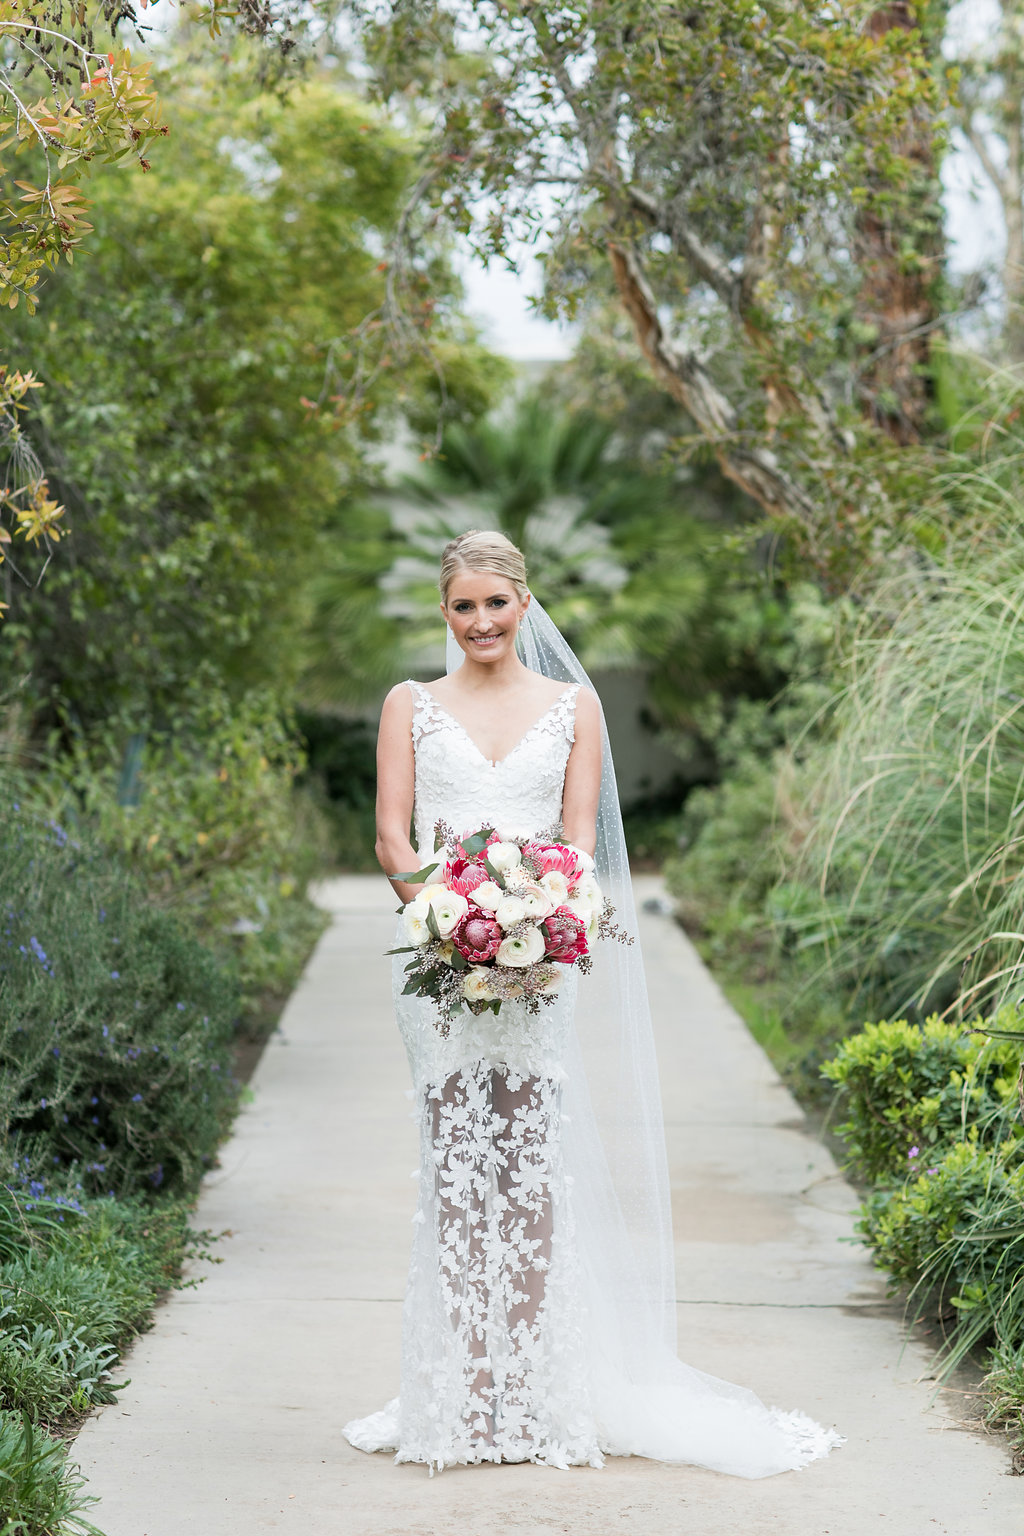 Mi Belle Photography: Bold Fashion For The Summertime Bride